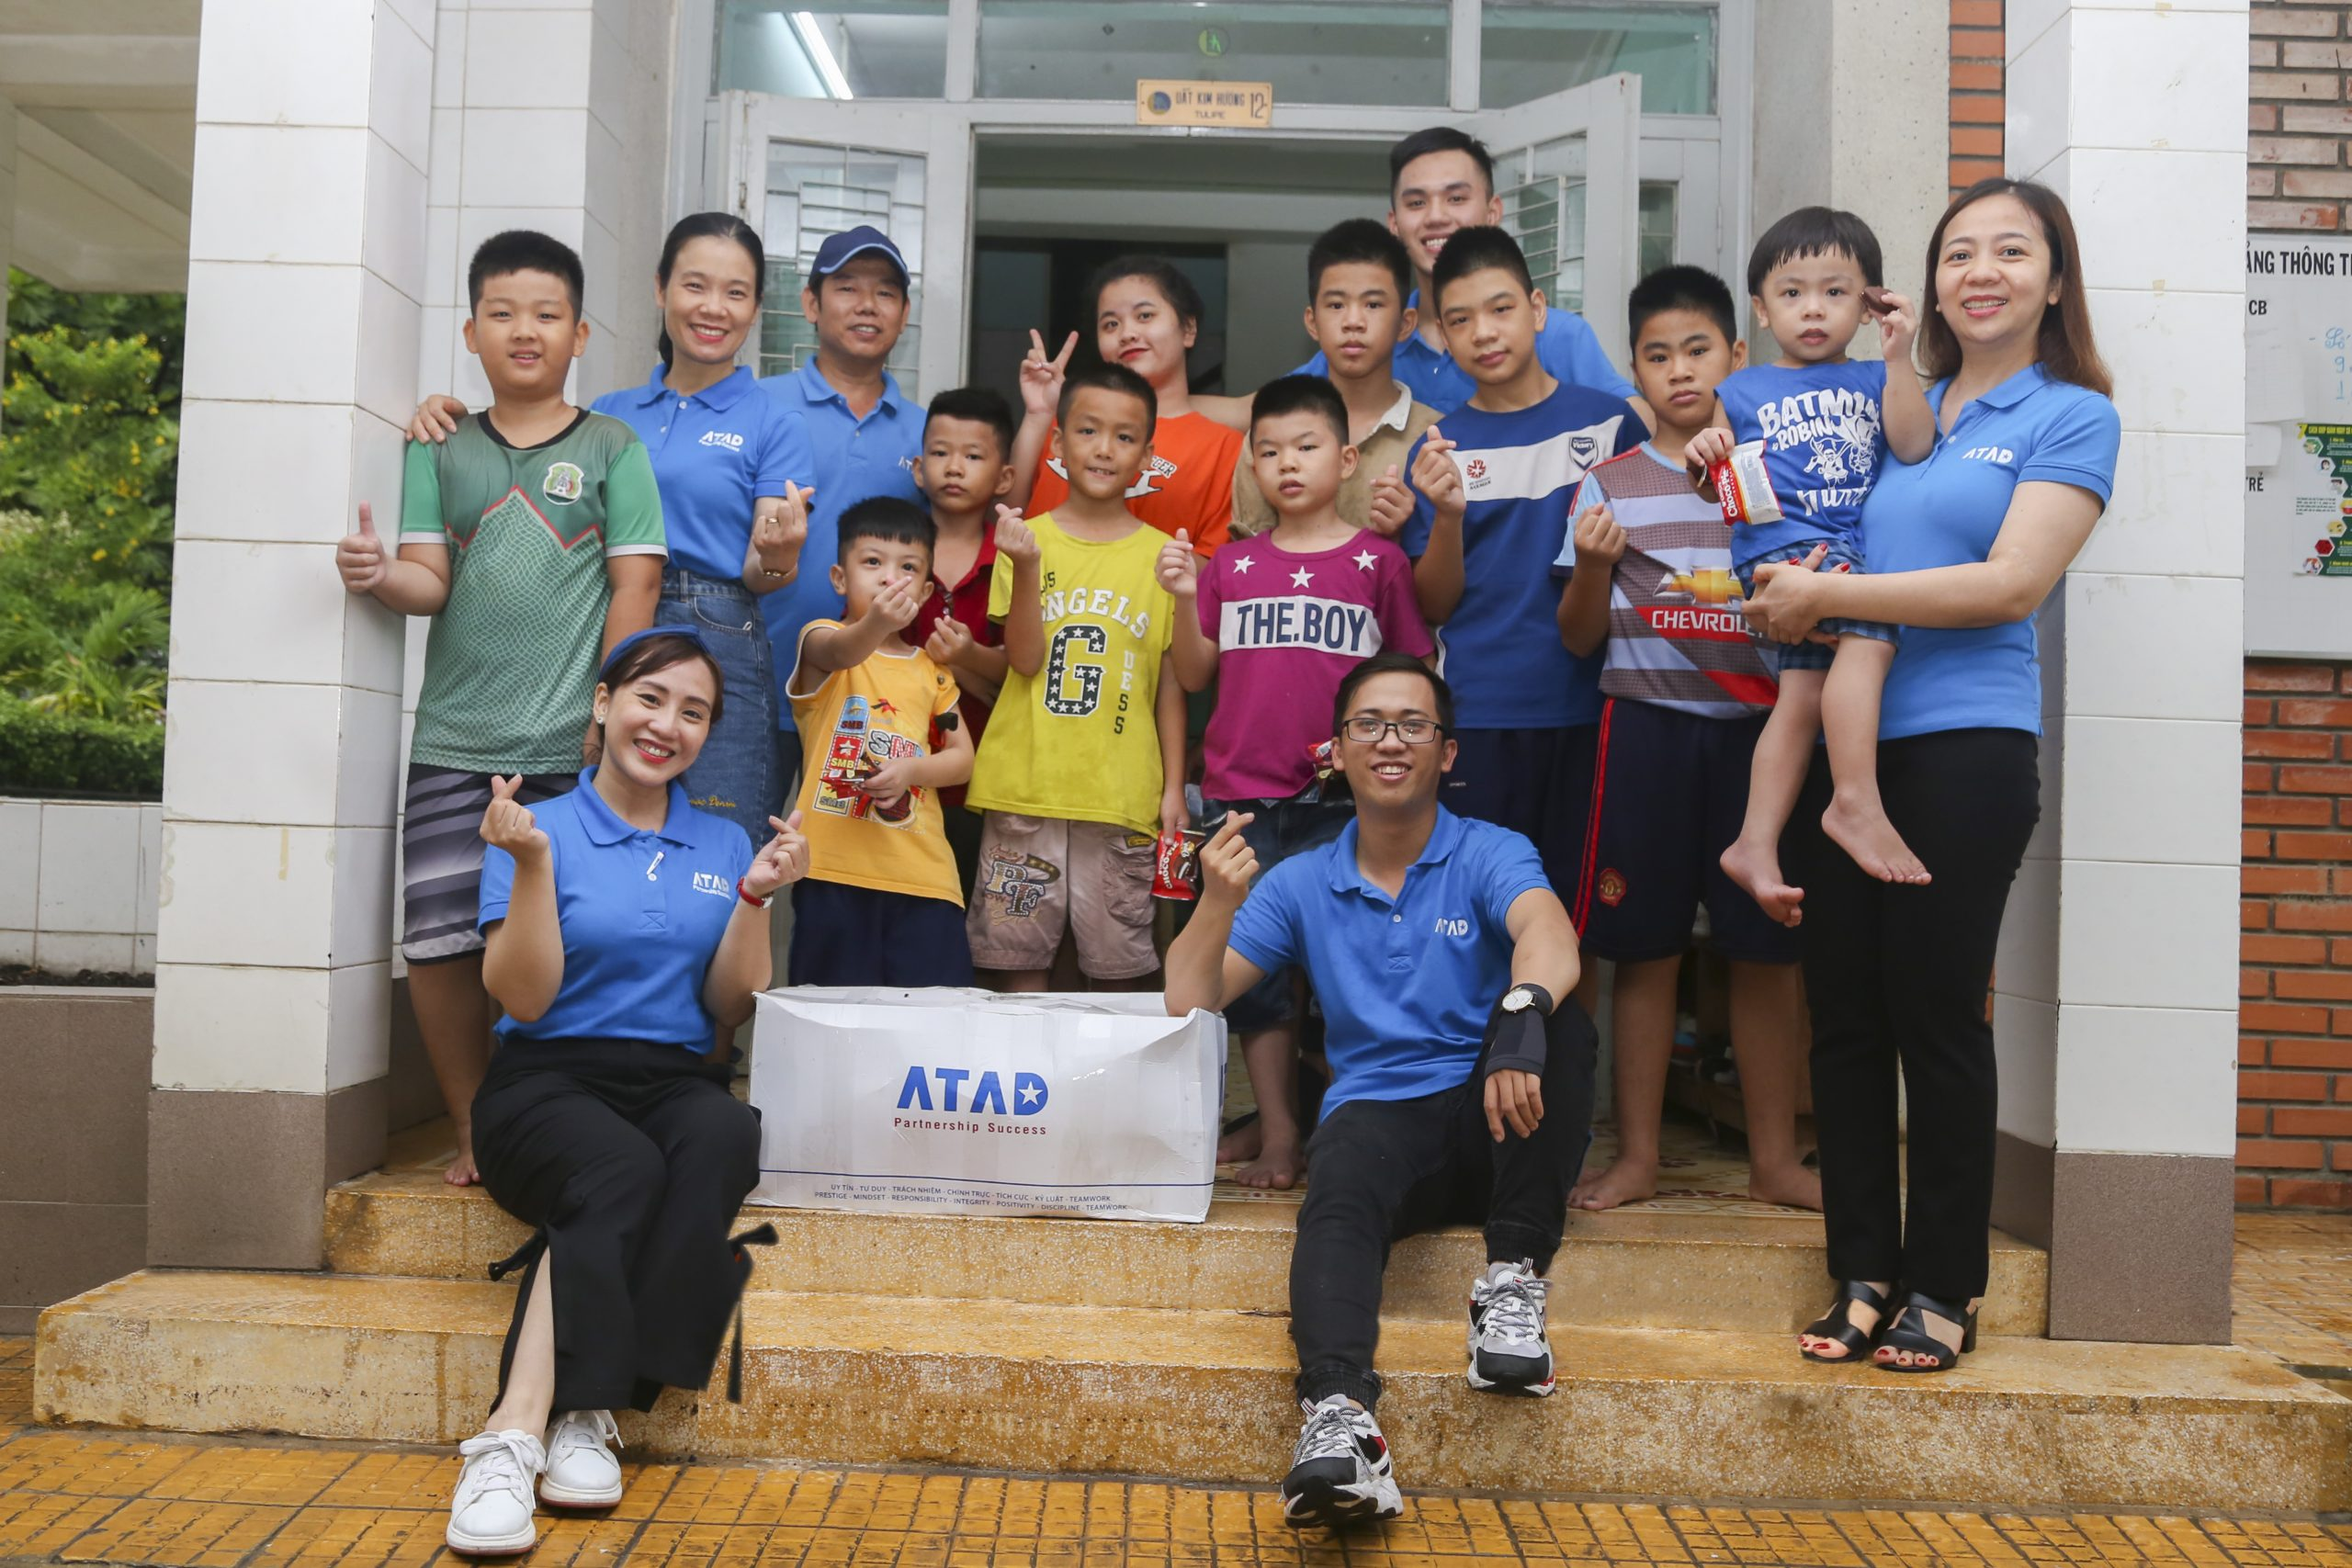 ATAD presented gifts for children on International Children's Day